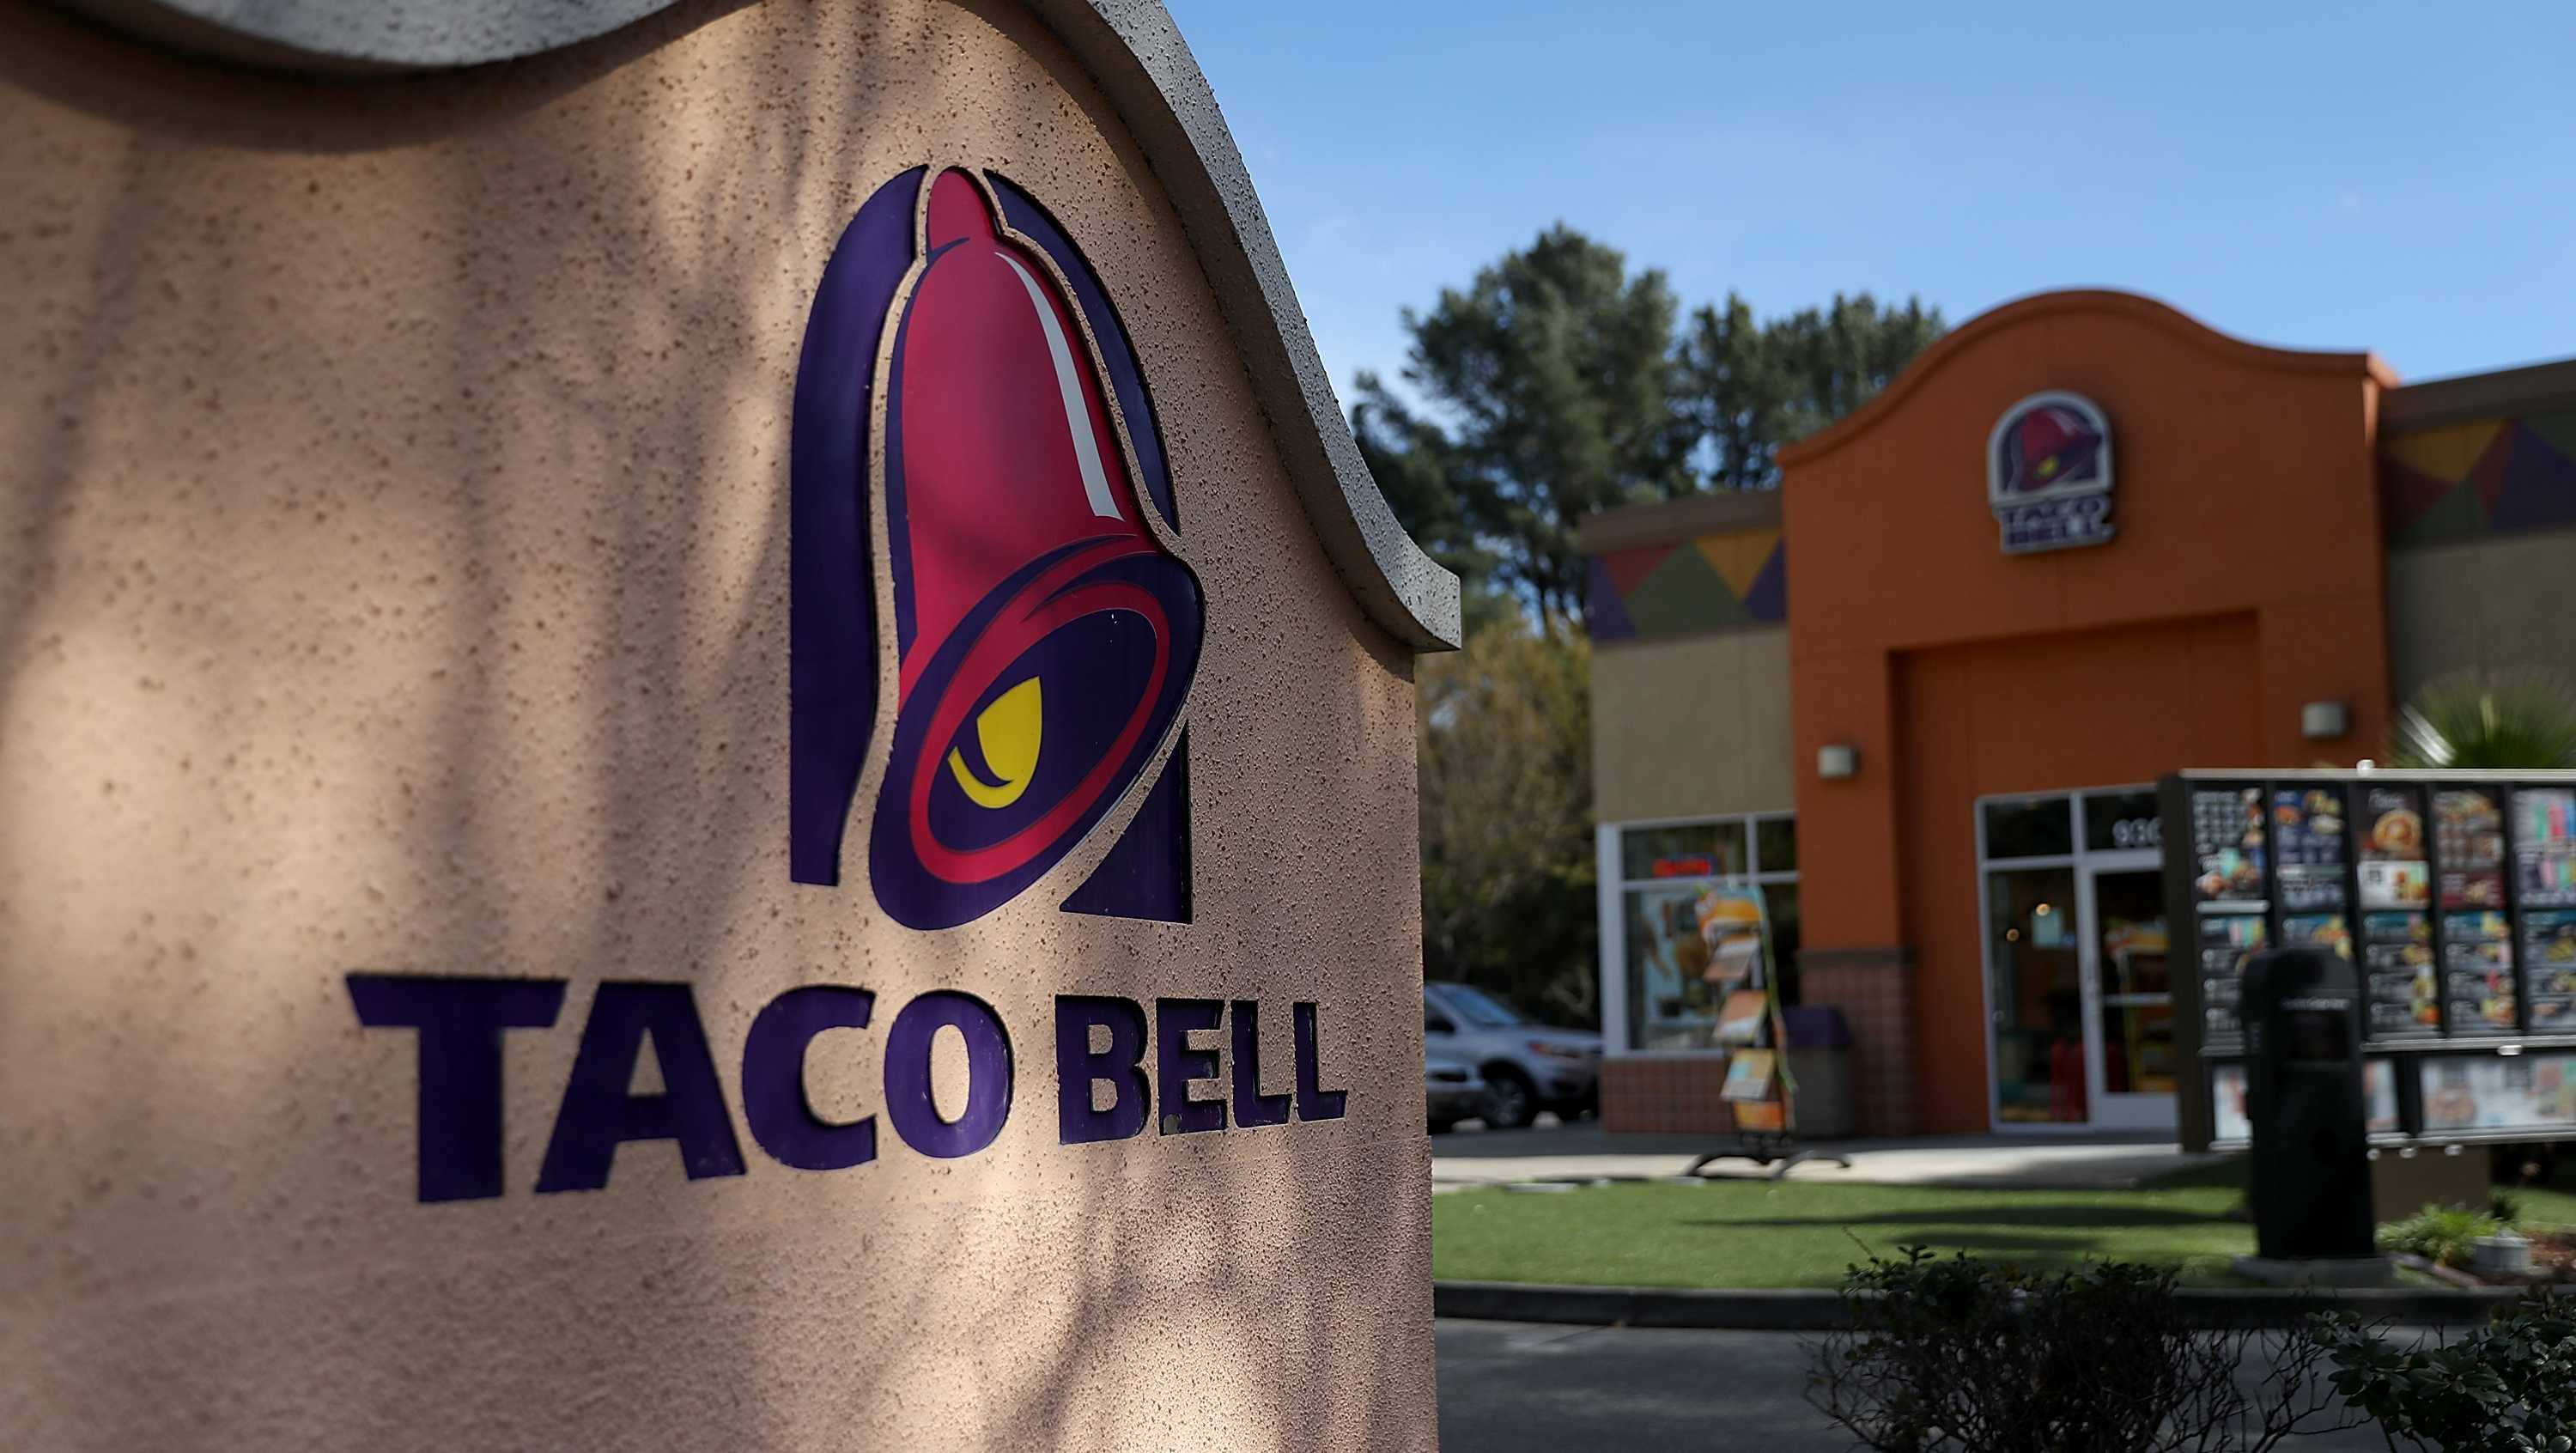 A sign is posted in front of a Taco Bell restaurant on February 22, 2018 in Novato, California.